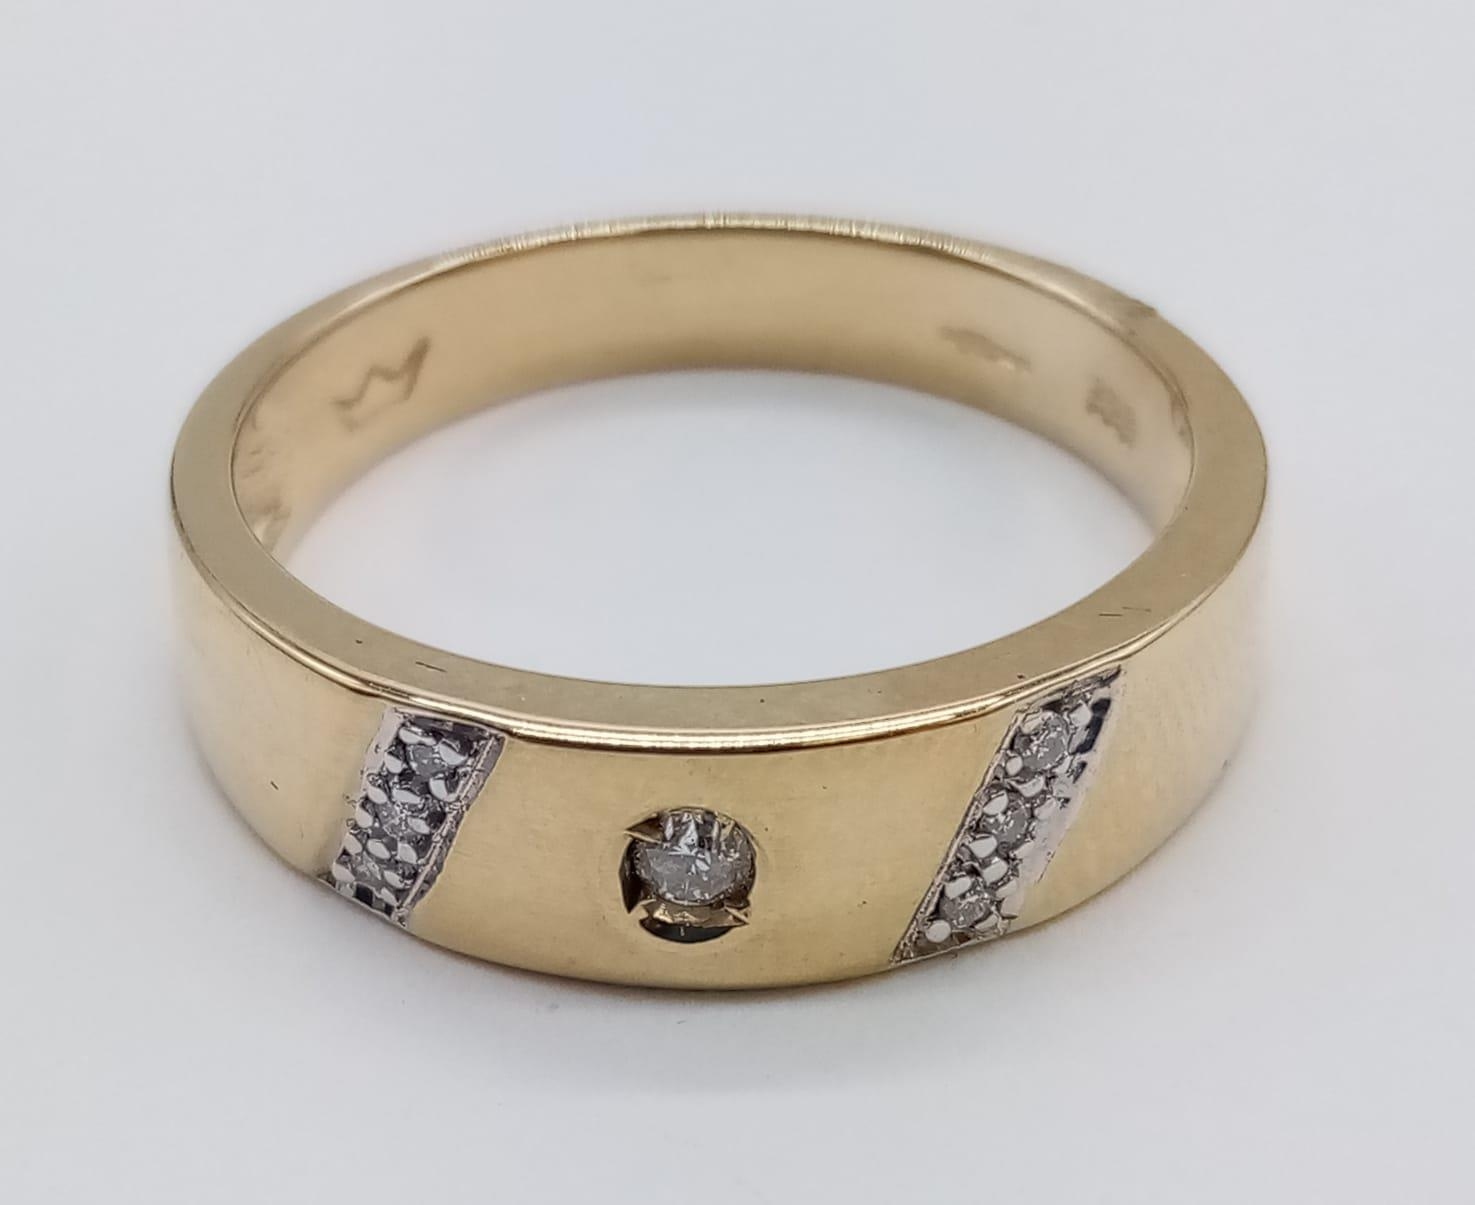 14CT Yellow gold DIAMOND SET BAND RING, weight 3.9G and size P